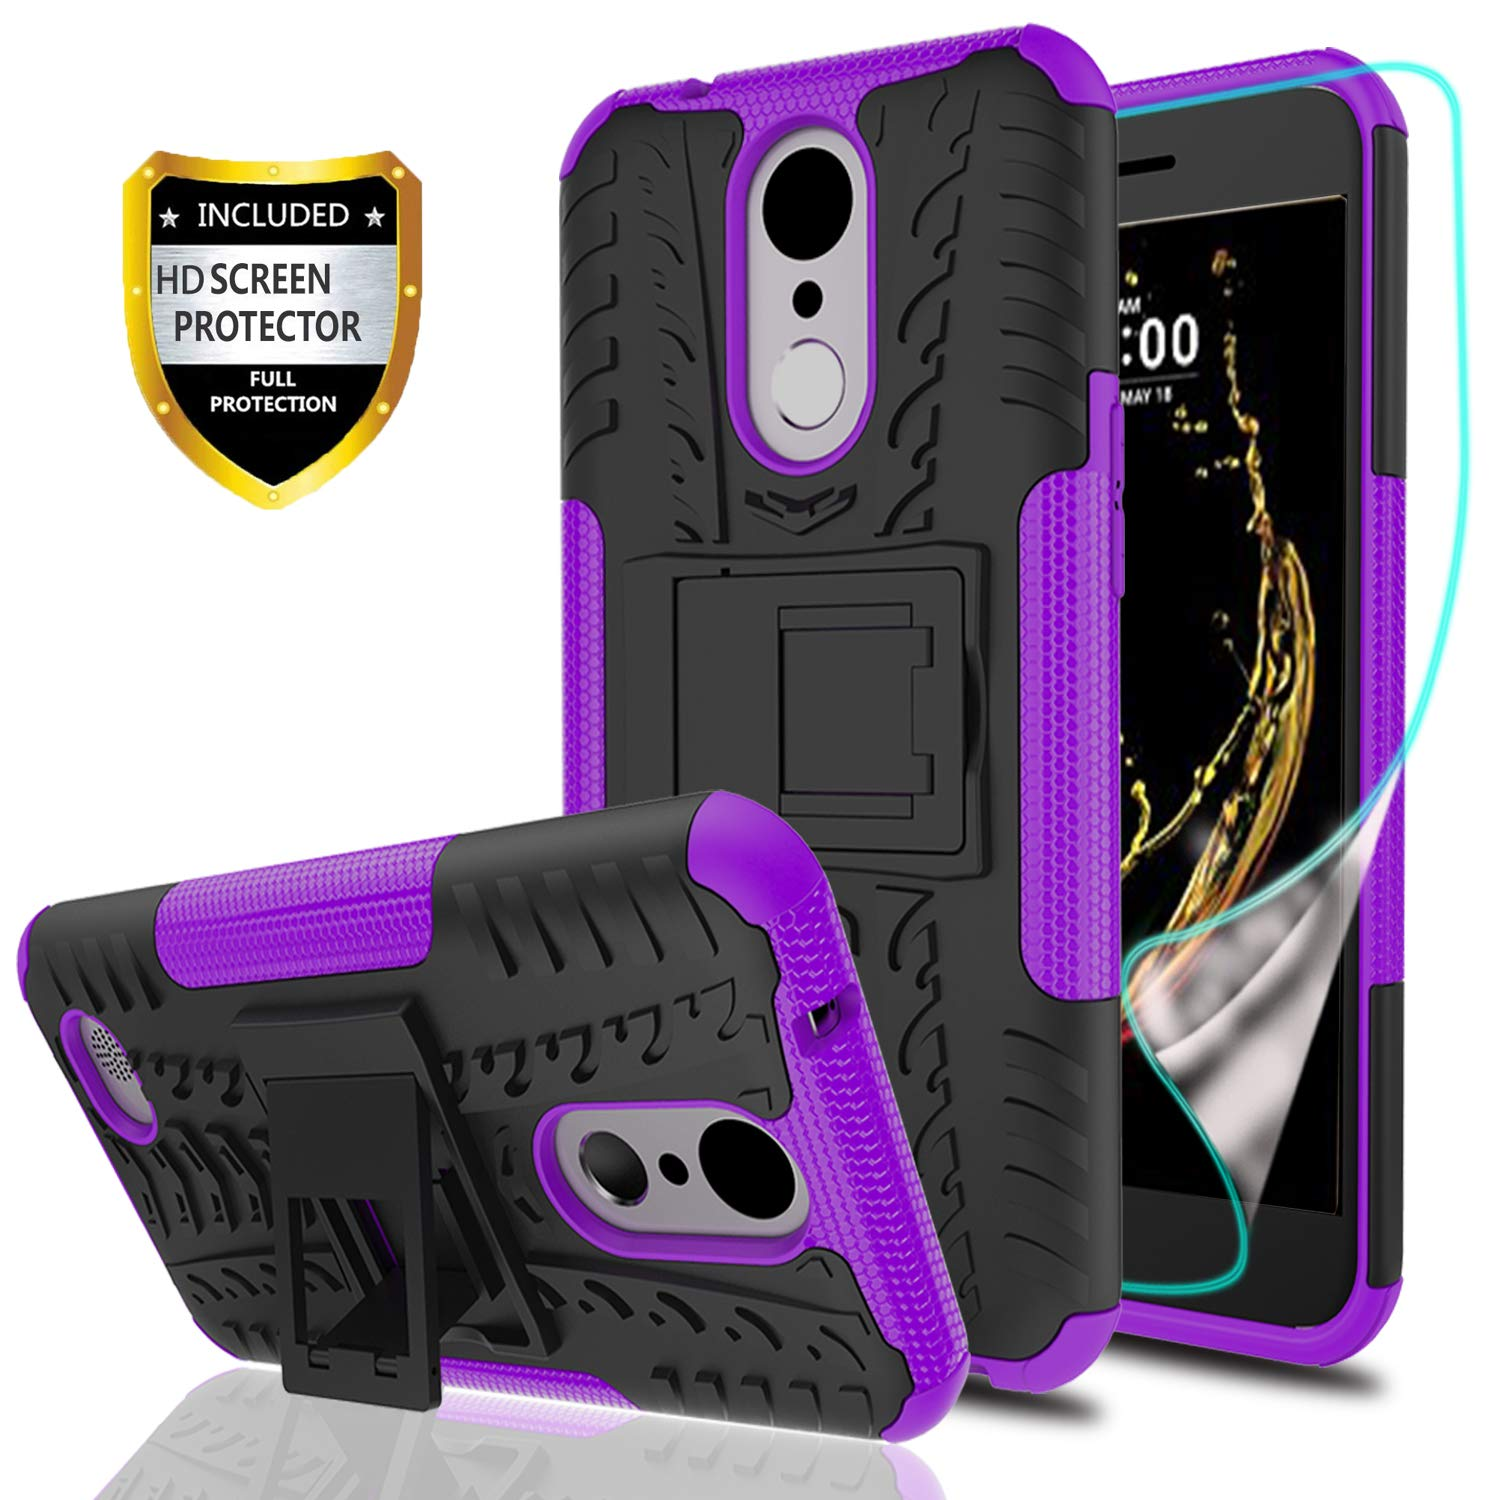 YmhxcY LG K20 V Phone Case,LG K20 Plus/LG K10 2017/LG Harmony/LG Grace Case with HD Screen Protector,Military Armor Drop Tested [Heavy Duty] Hybrid Case with Kickstand for LG LV5-LT Purple